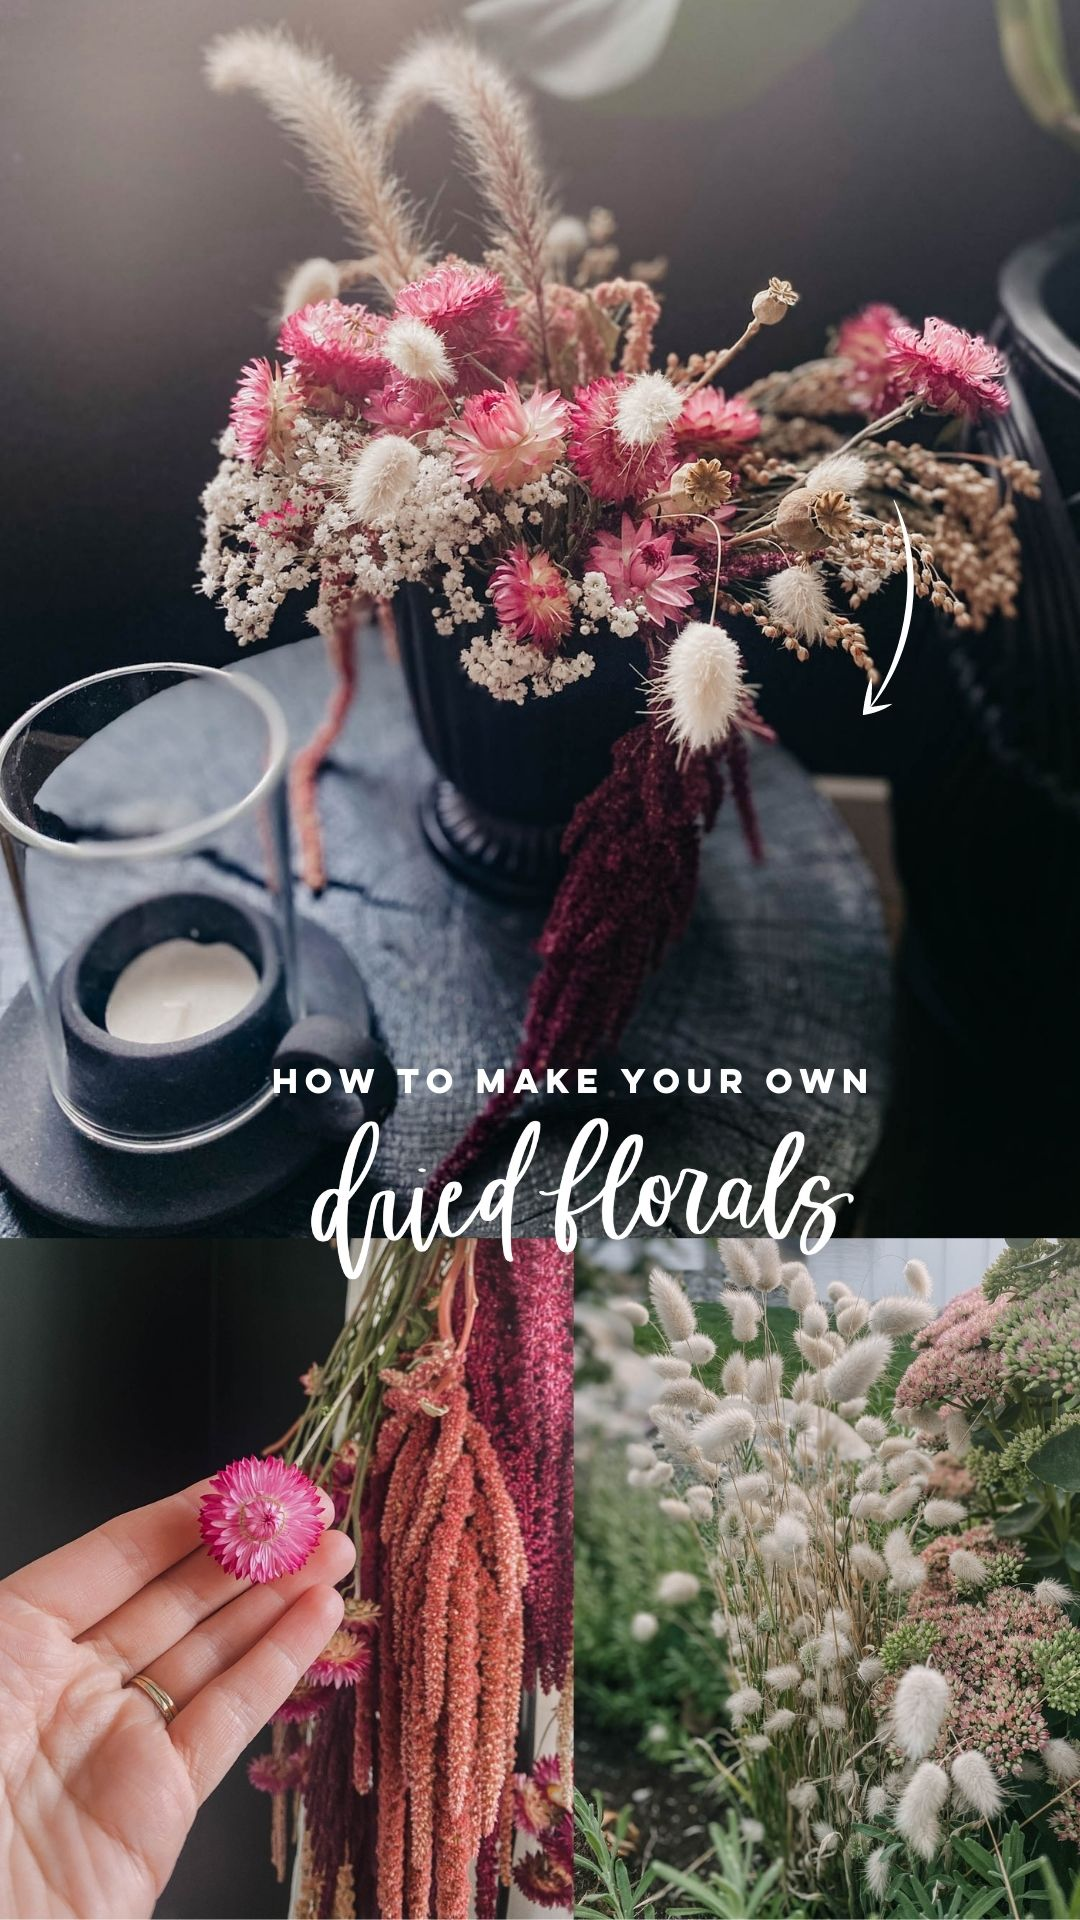 How to dry florals for decor